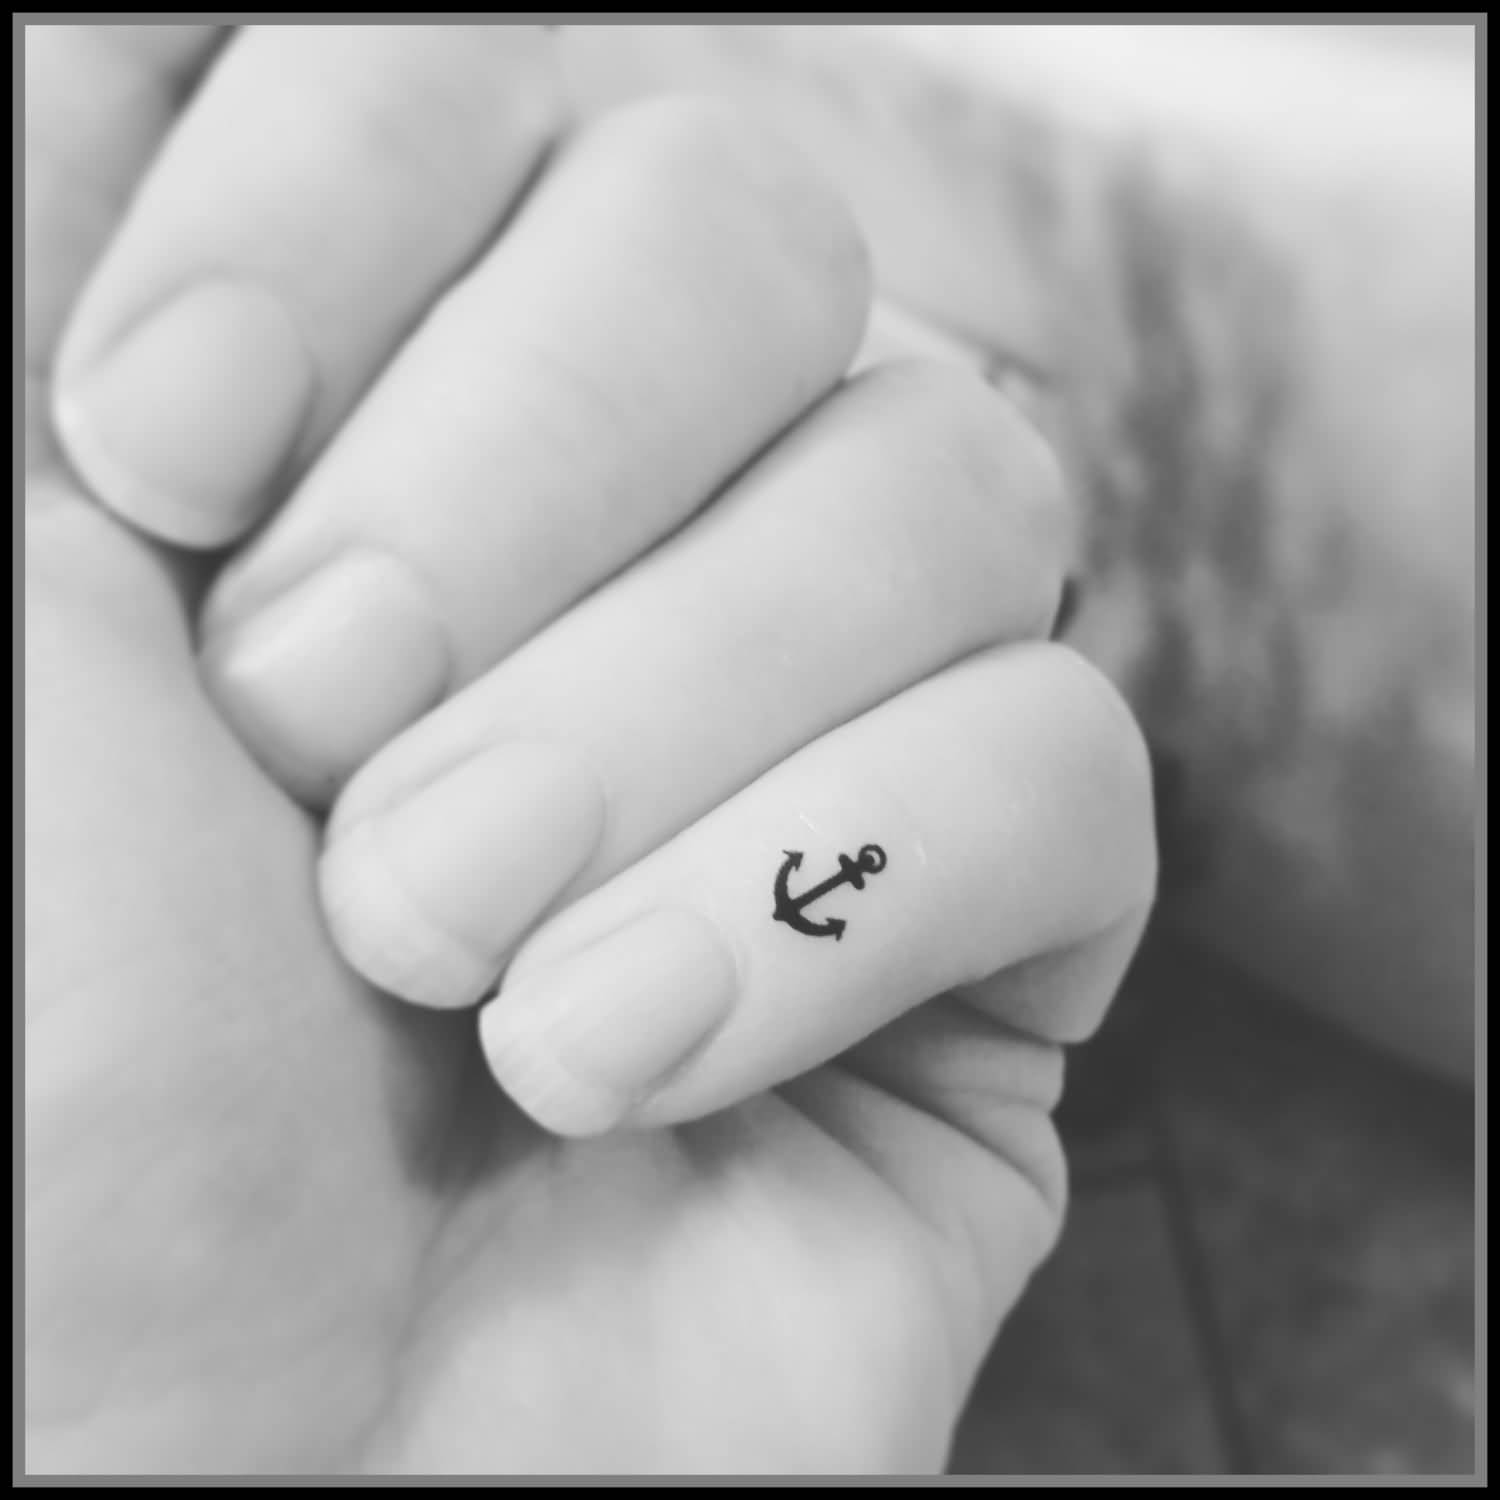 Cute Tiny Anchor Tattoo On Pinky Finger